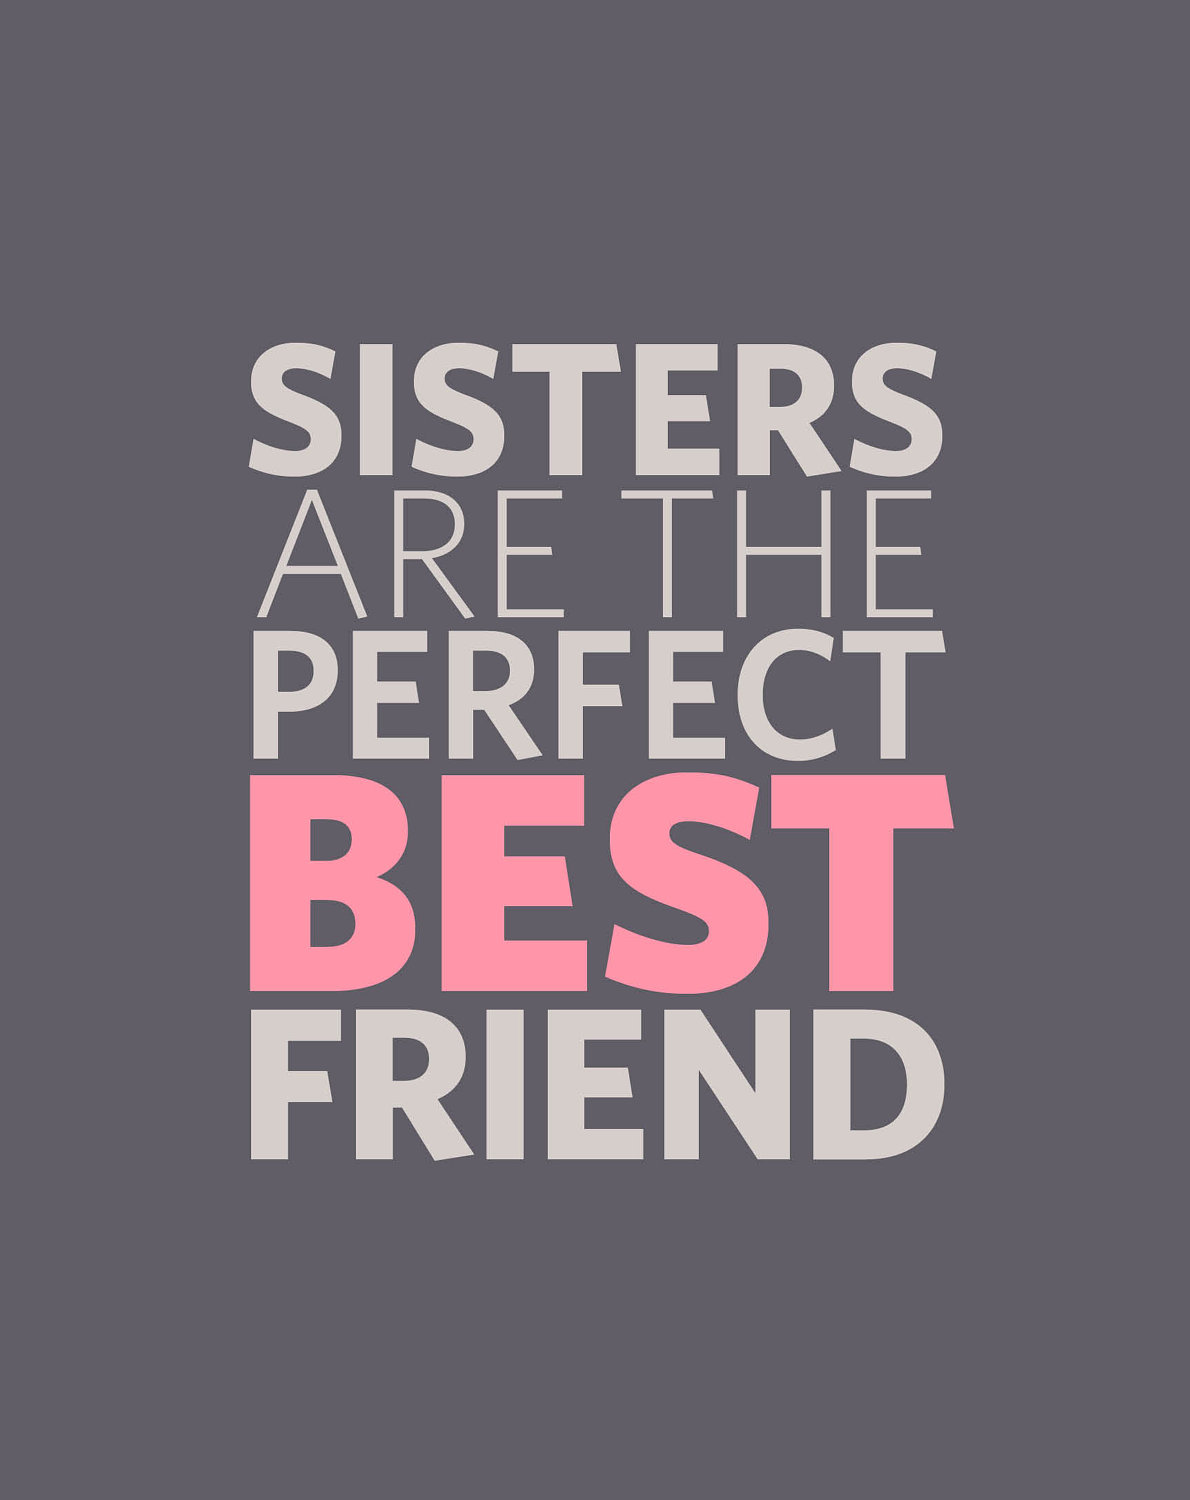 I Love My Sister Quotes 62 Happy Sisters' Day 2016 Greeting Pictures And Images